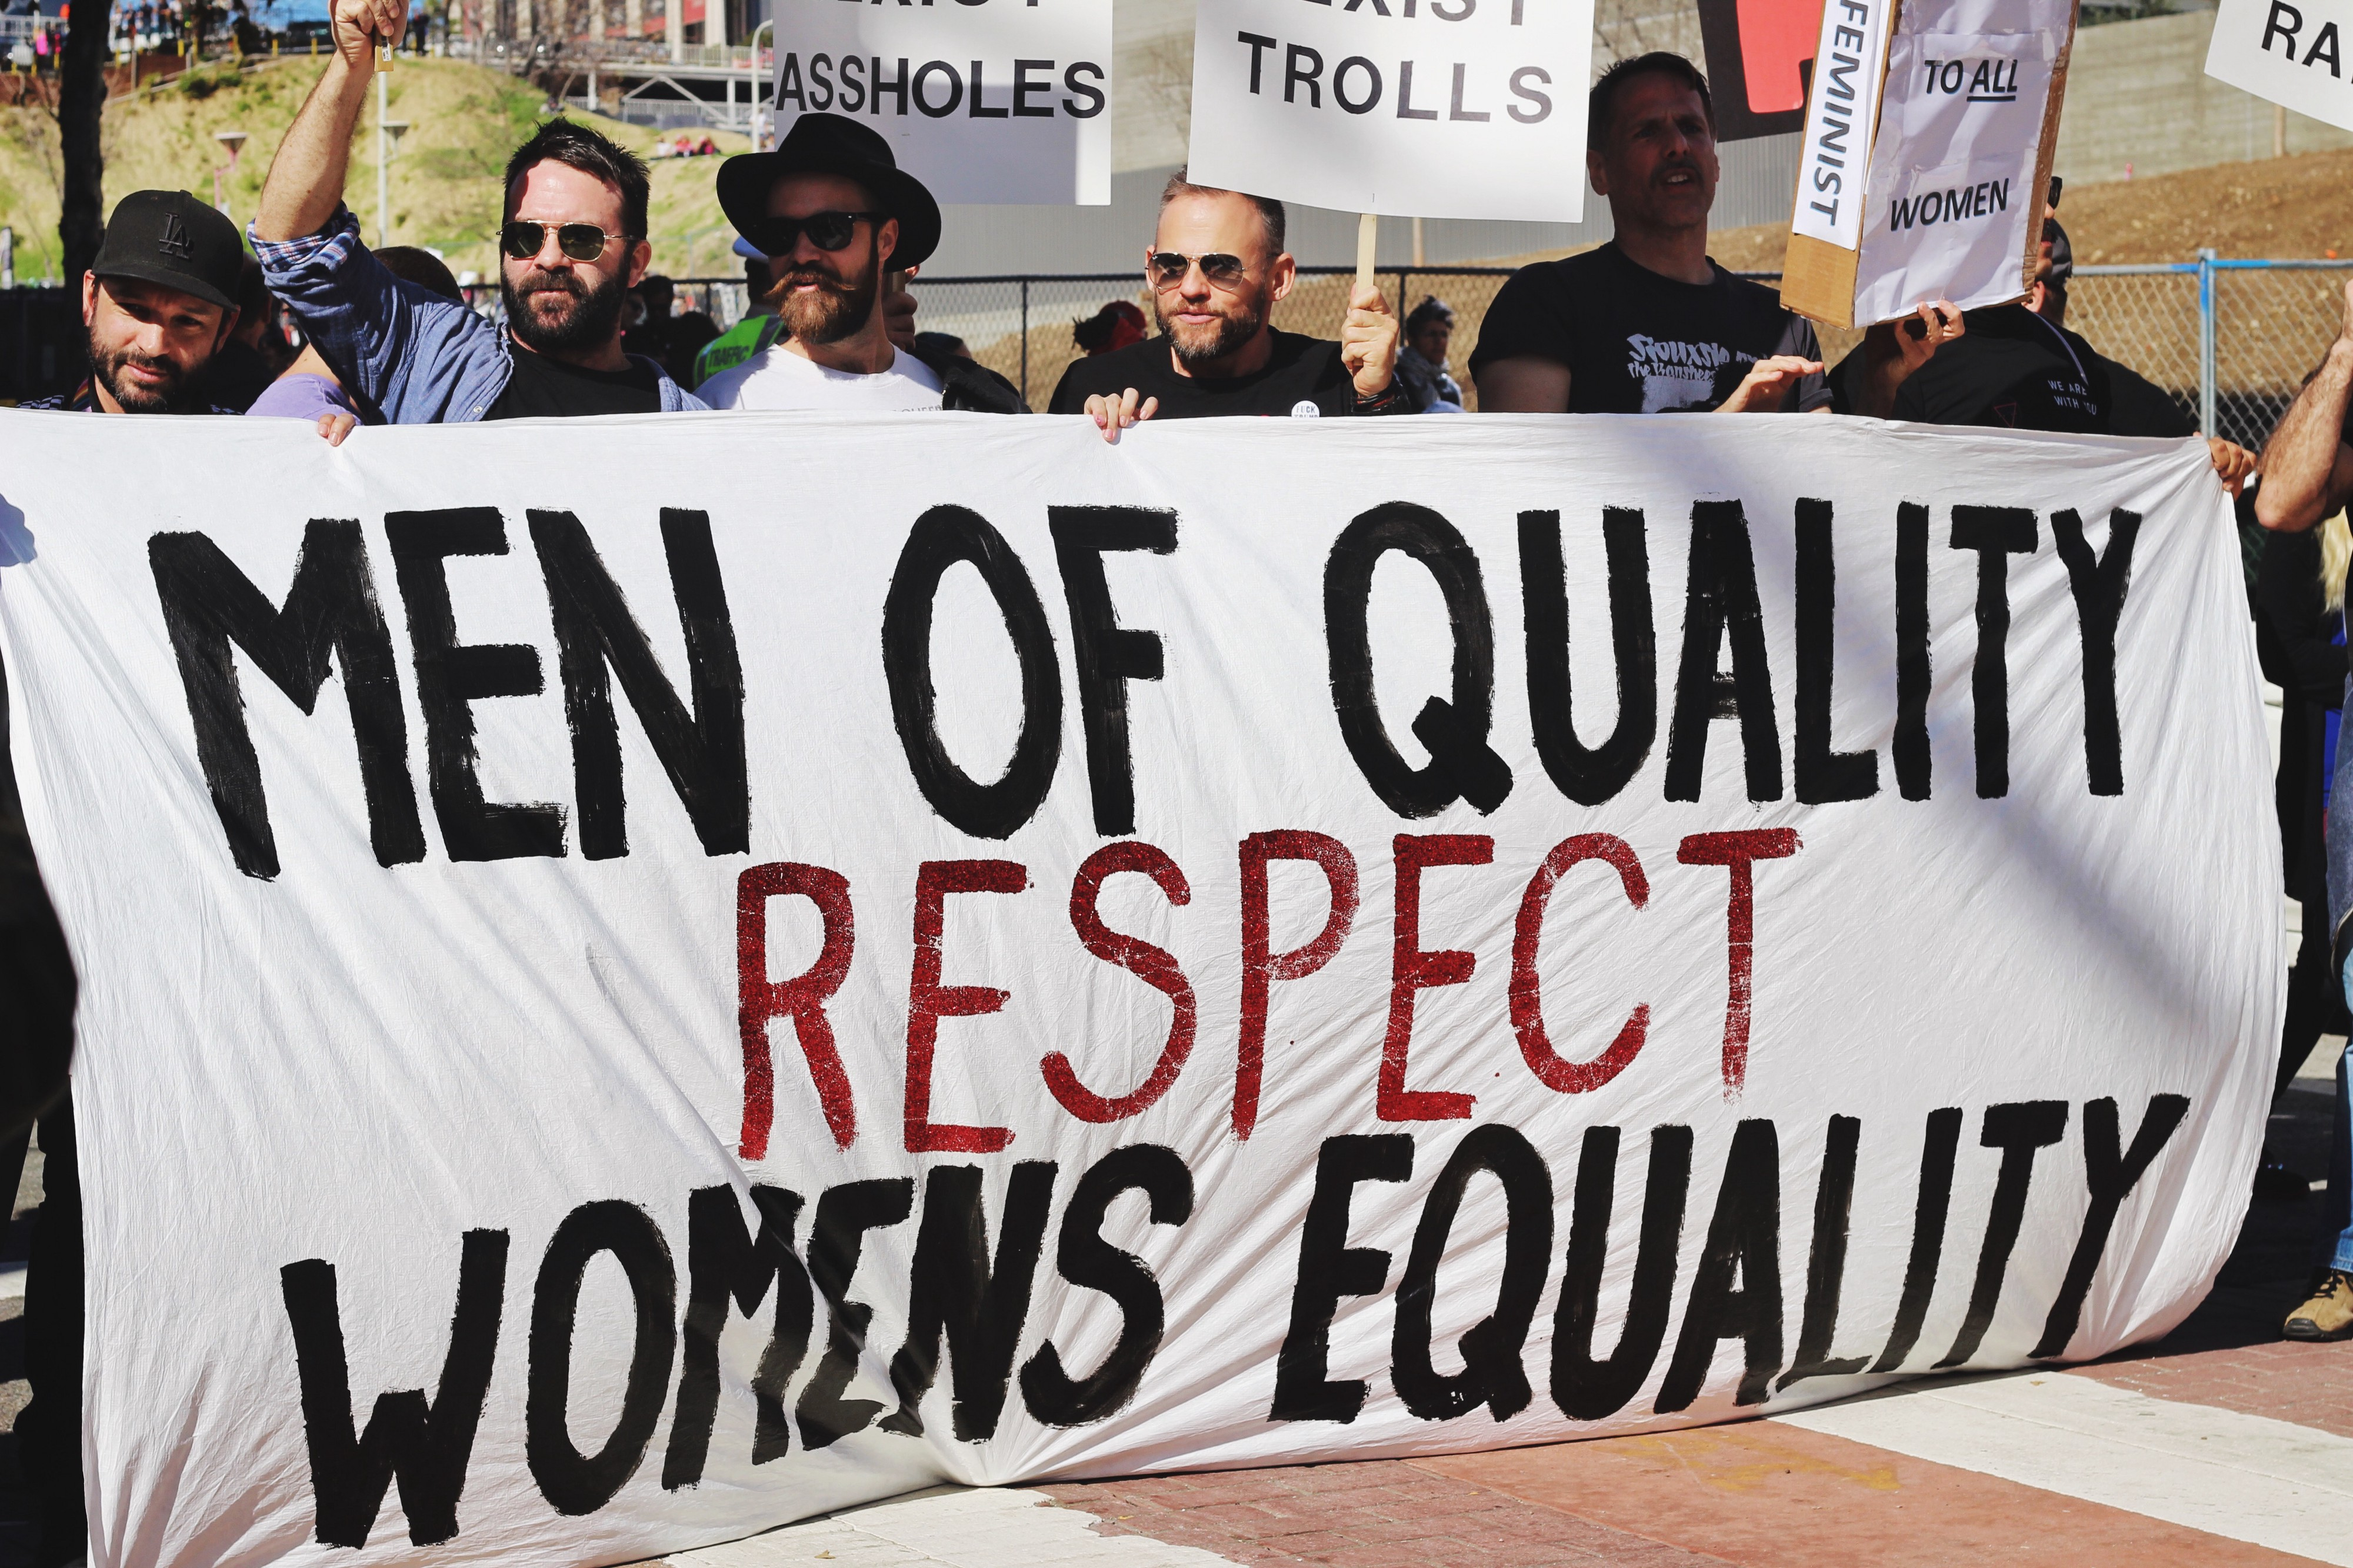 Men marching for women's rights. Four men holding a banner which reads Men of Quality Respect Women's Equality.